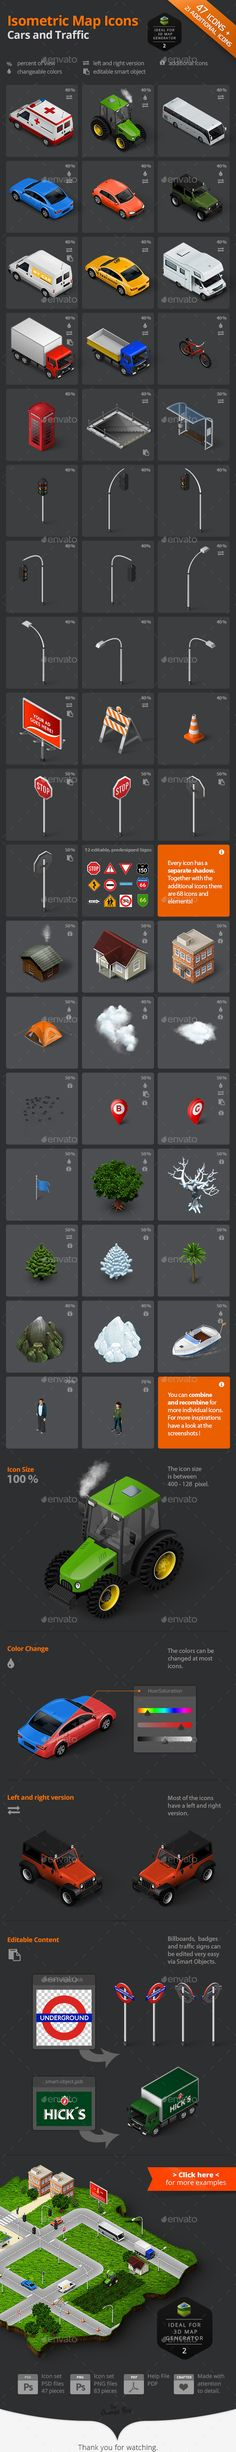 Isometric Map Icons - Cars and Traffic | Buy and Download: http://graphicriver.net/item/isometric-map-icons-cars-and-traffic/8861164?WT.ac=category_thumb&WT.z_author=Orange_Box&ref=ksioks